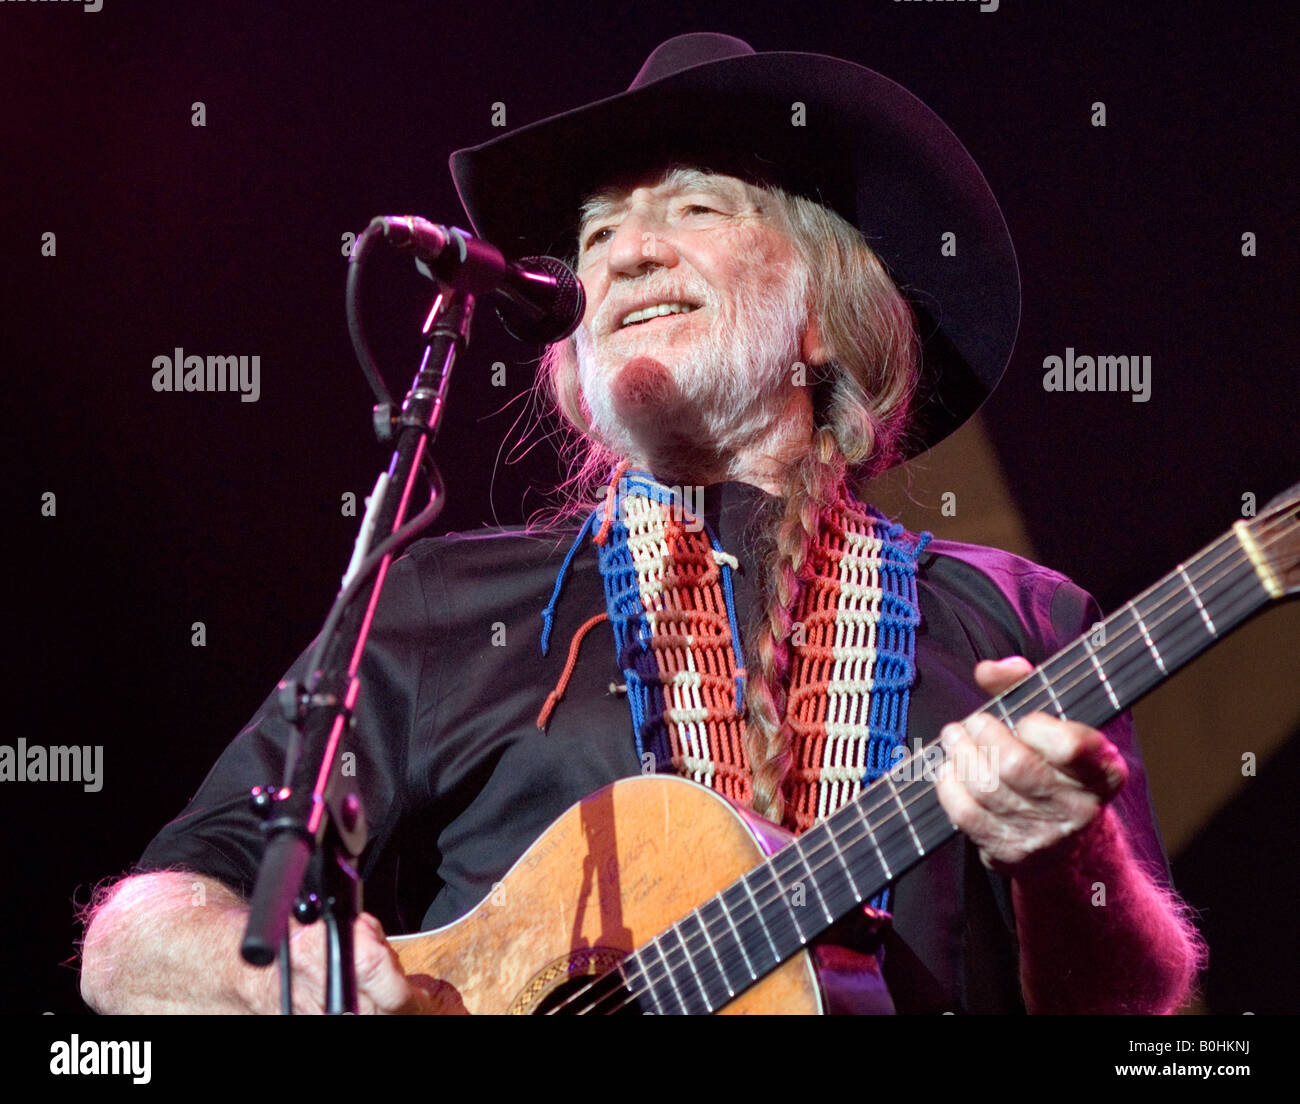 Willie Nelson performing at Wolverhampton, 12th May 2008 - Stock Image